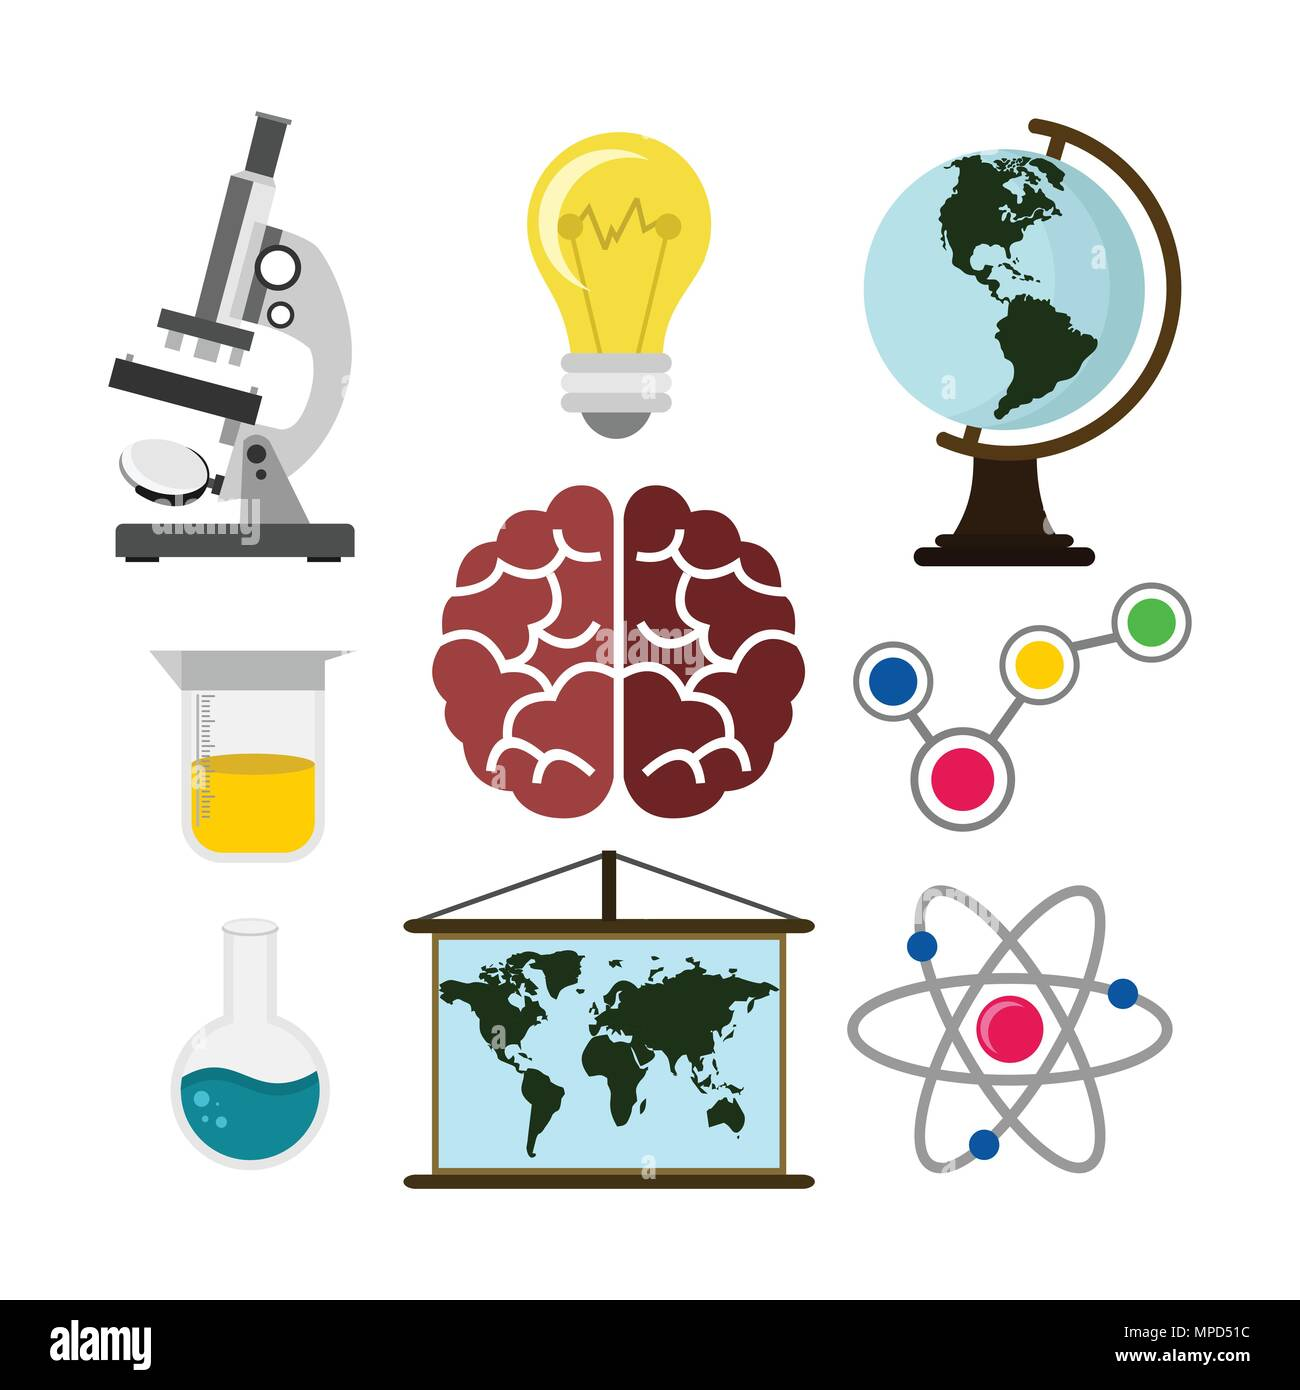 Education Related Objects Vector Illustration Graphic Design Set - Stock Vector